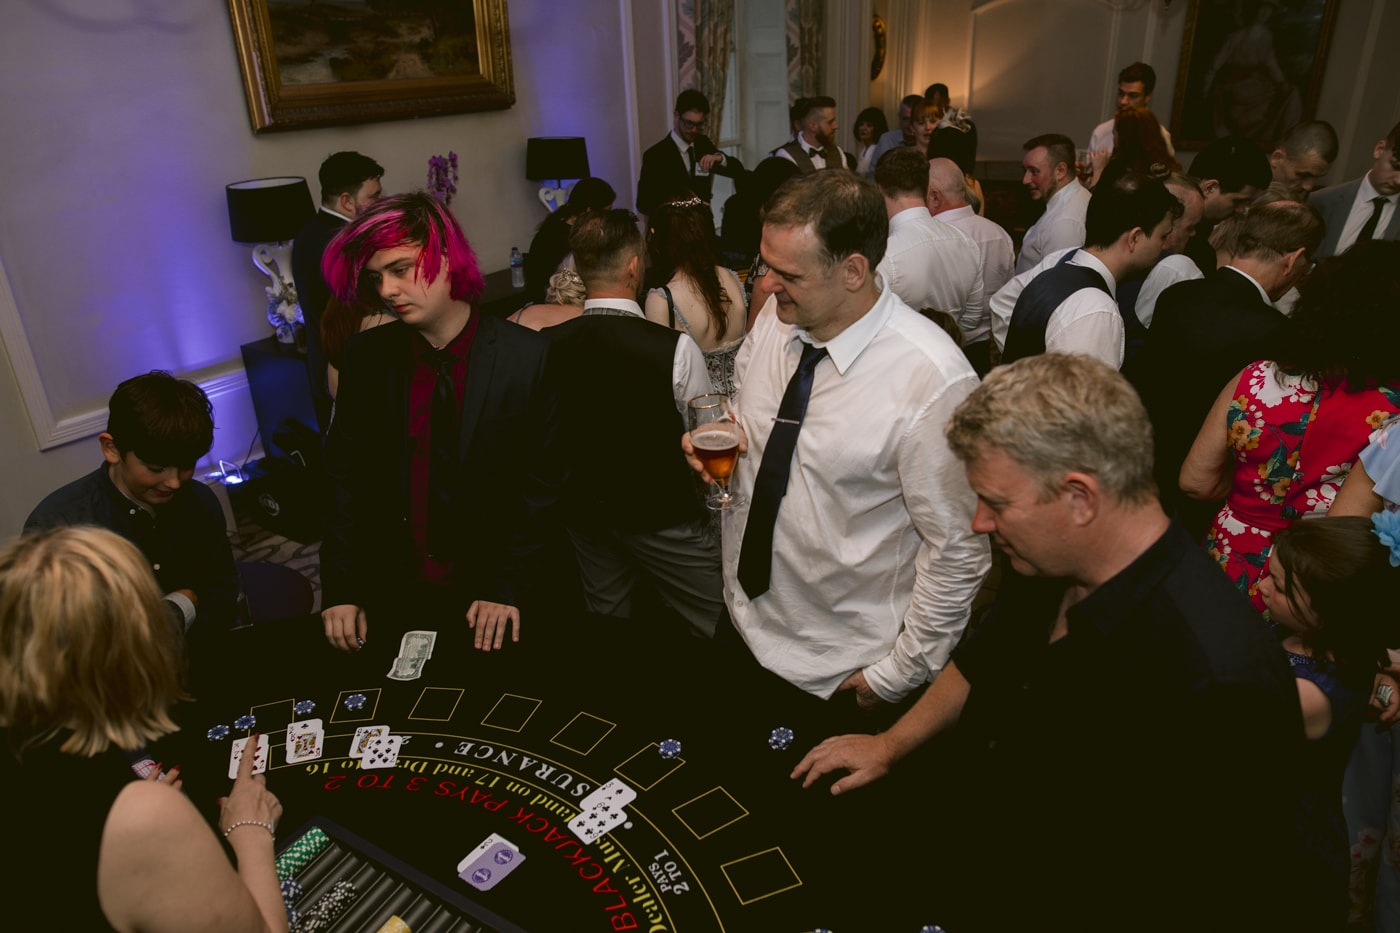 Guests Playing Casino at Storrs Hall Wedding